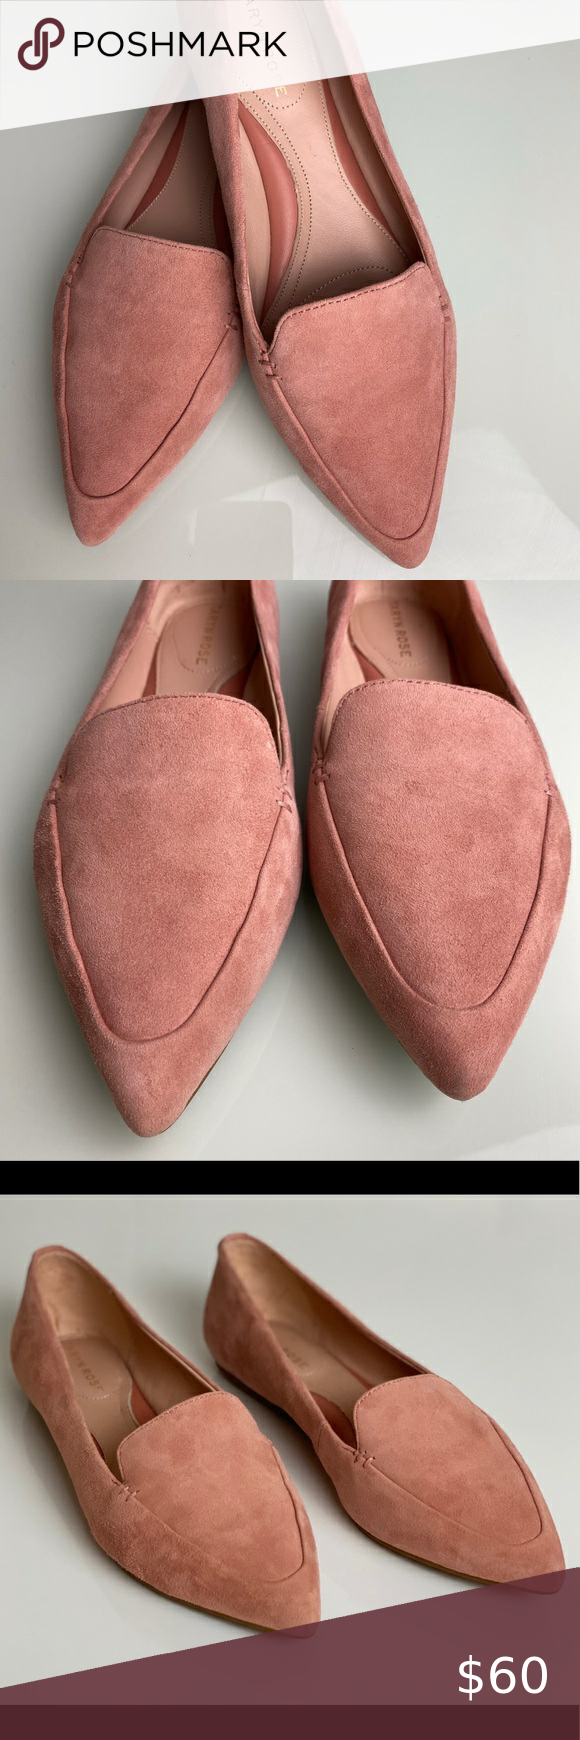 0008) Taryn Rose Pink Suede Loafer in